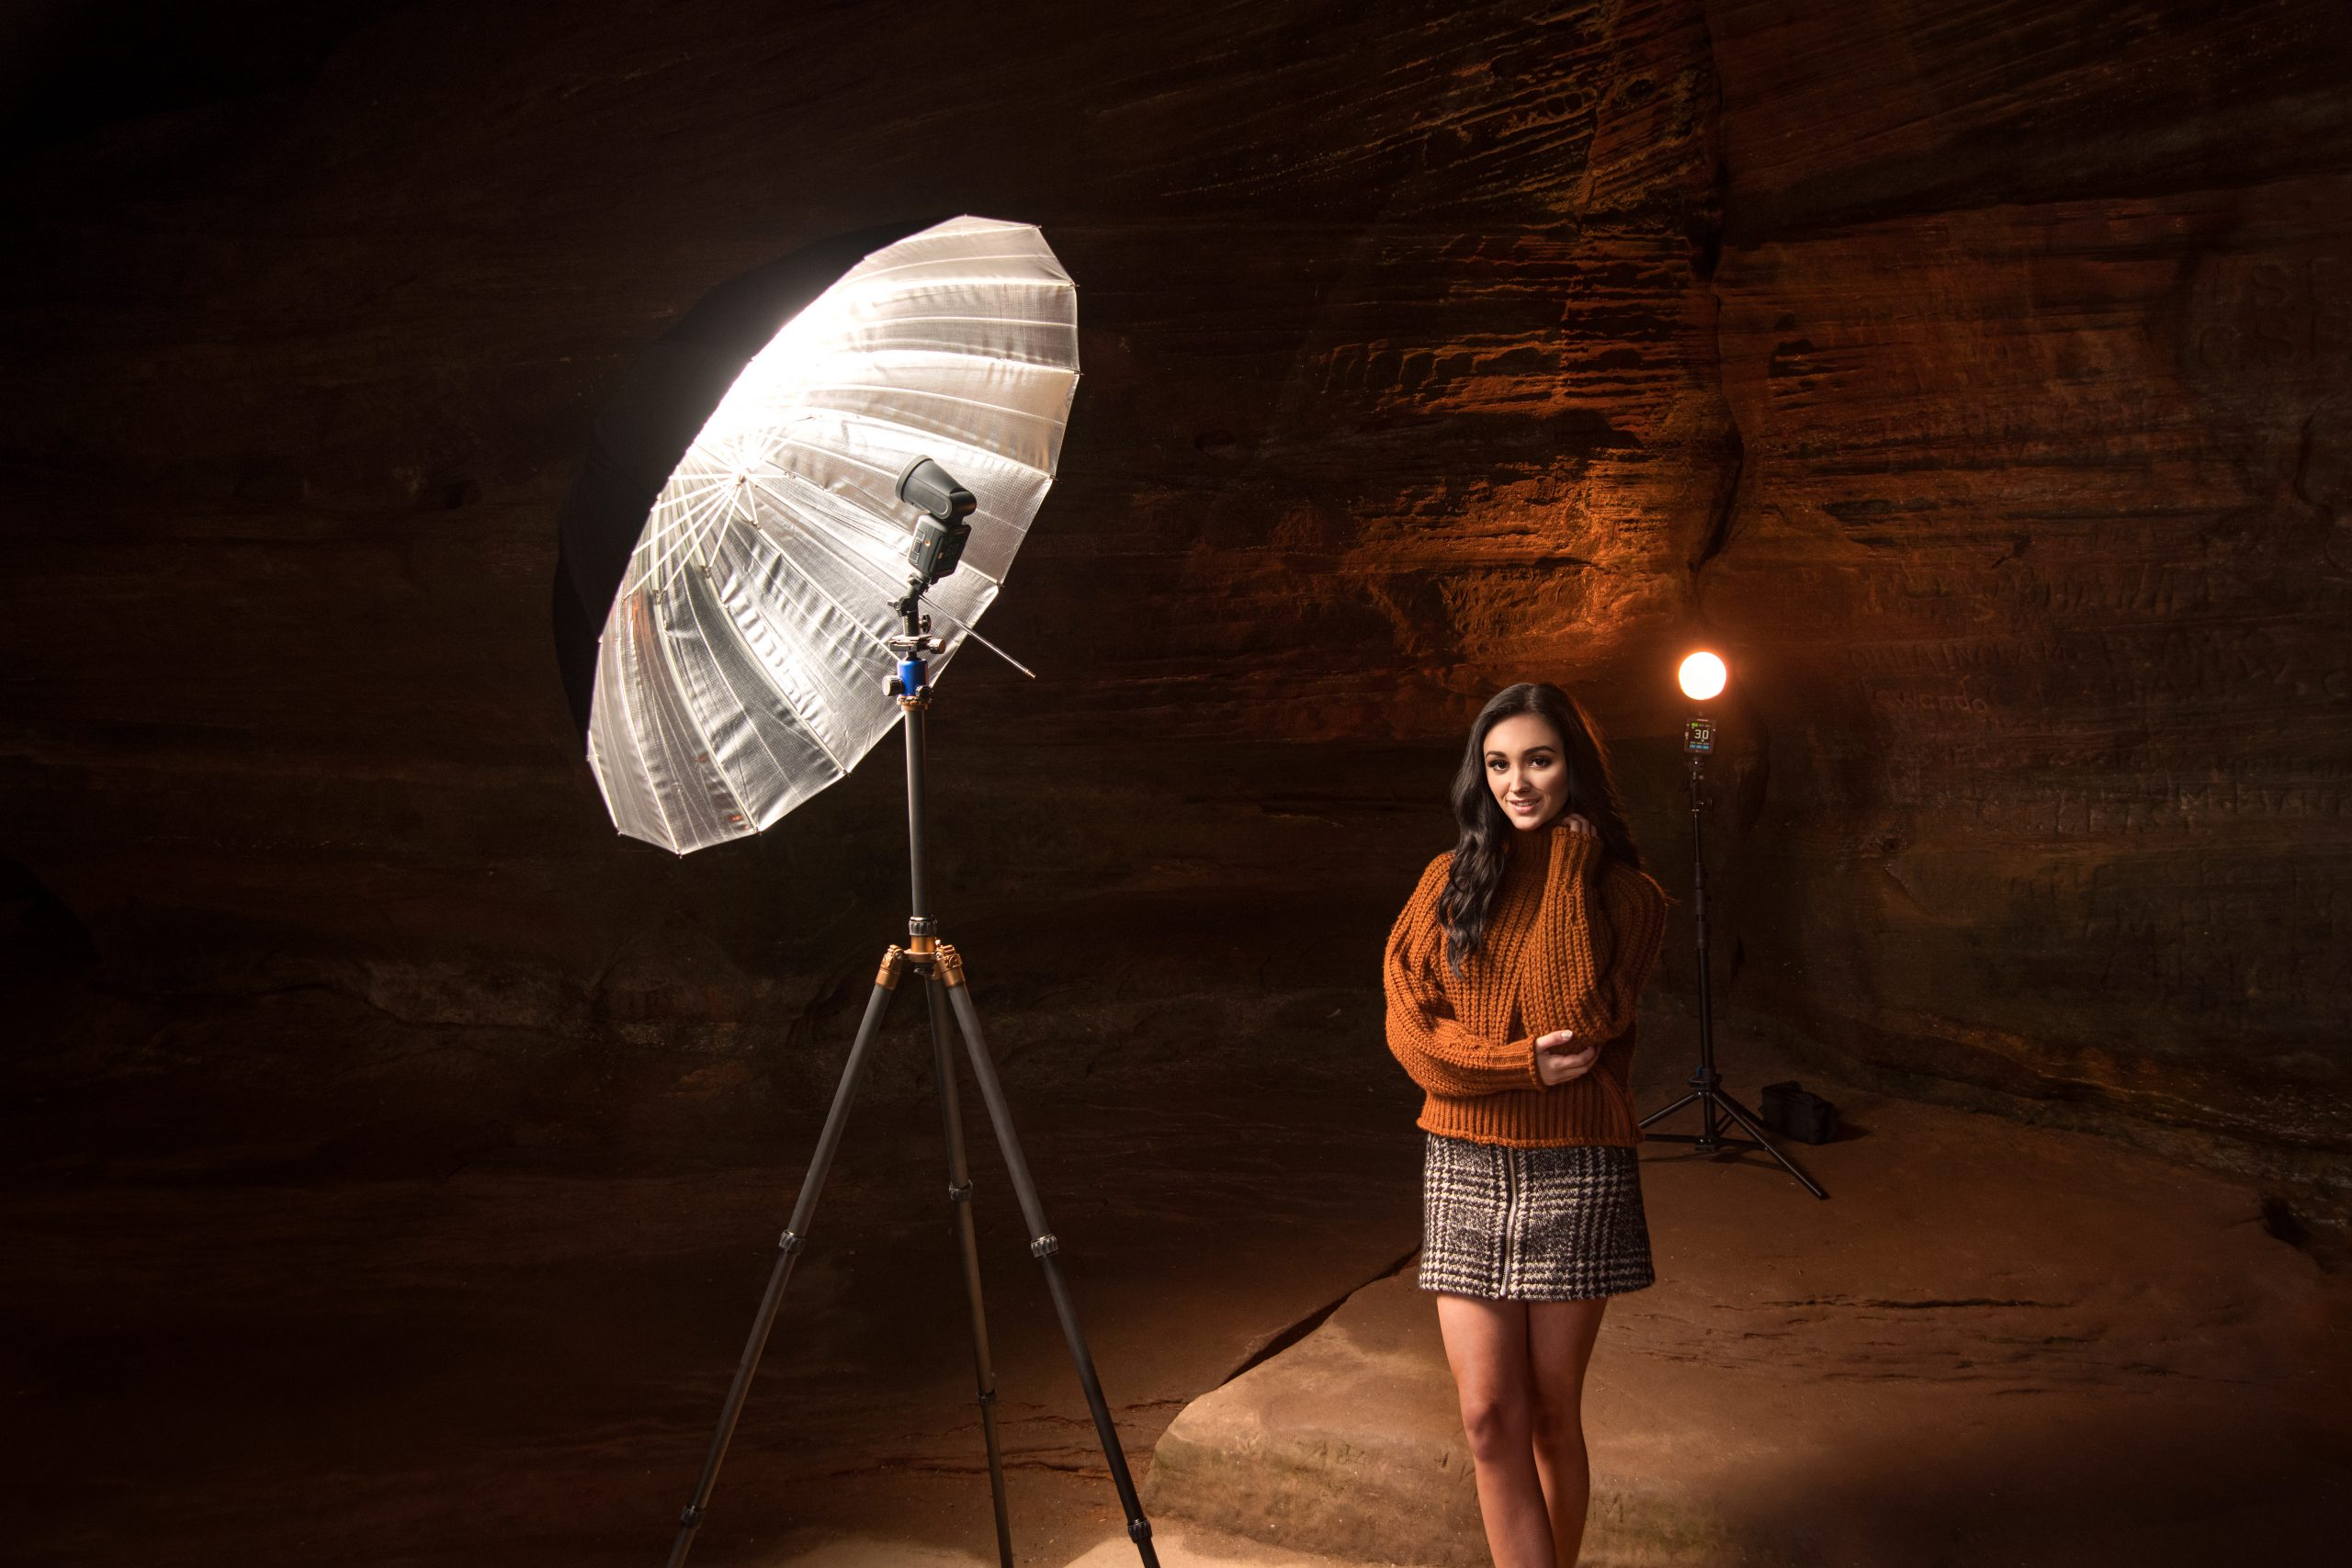 Behind the scenes of the portrait lighting set up